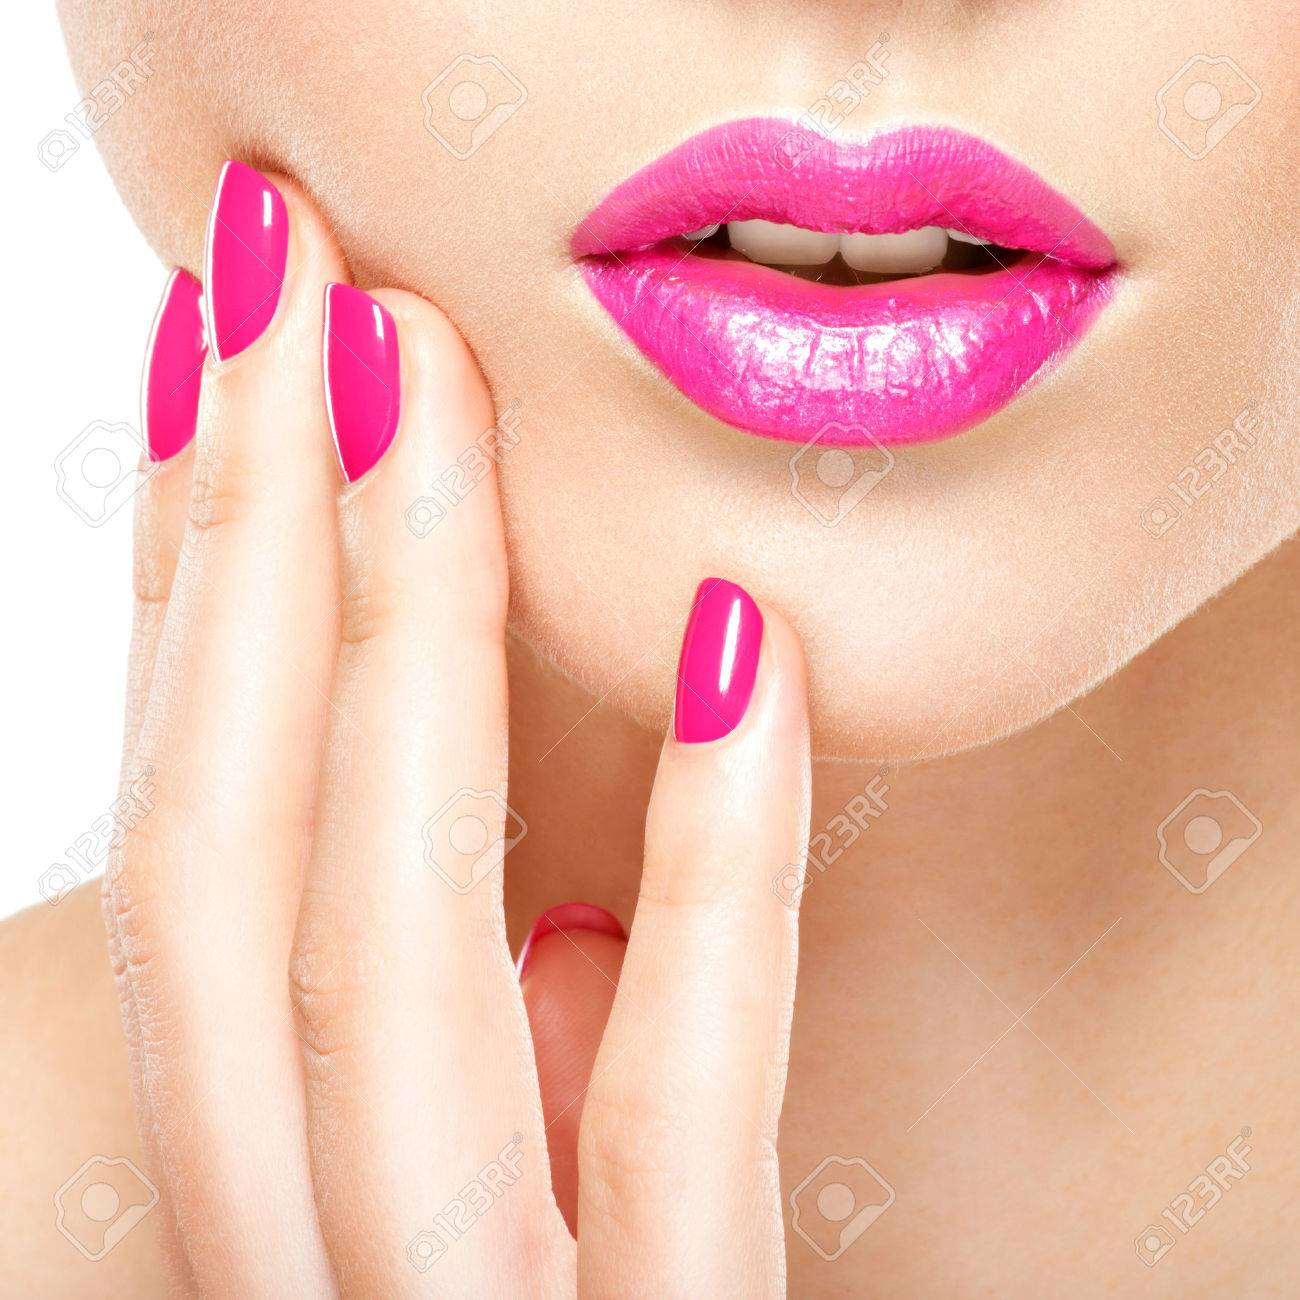 Closeup woman hand with pink nails near lips. Fingernails with pink manicure Banque d'images - 54185033